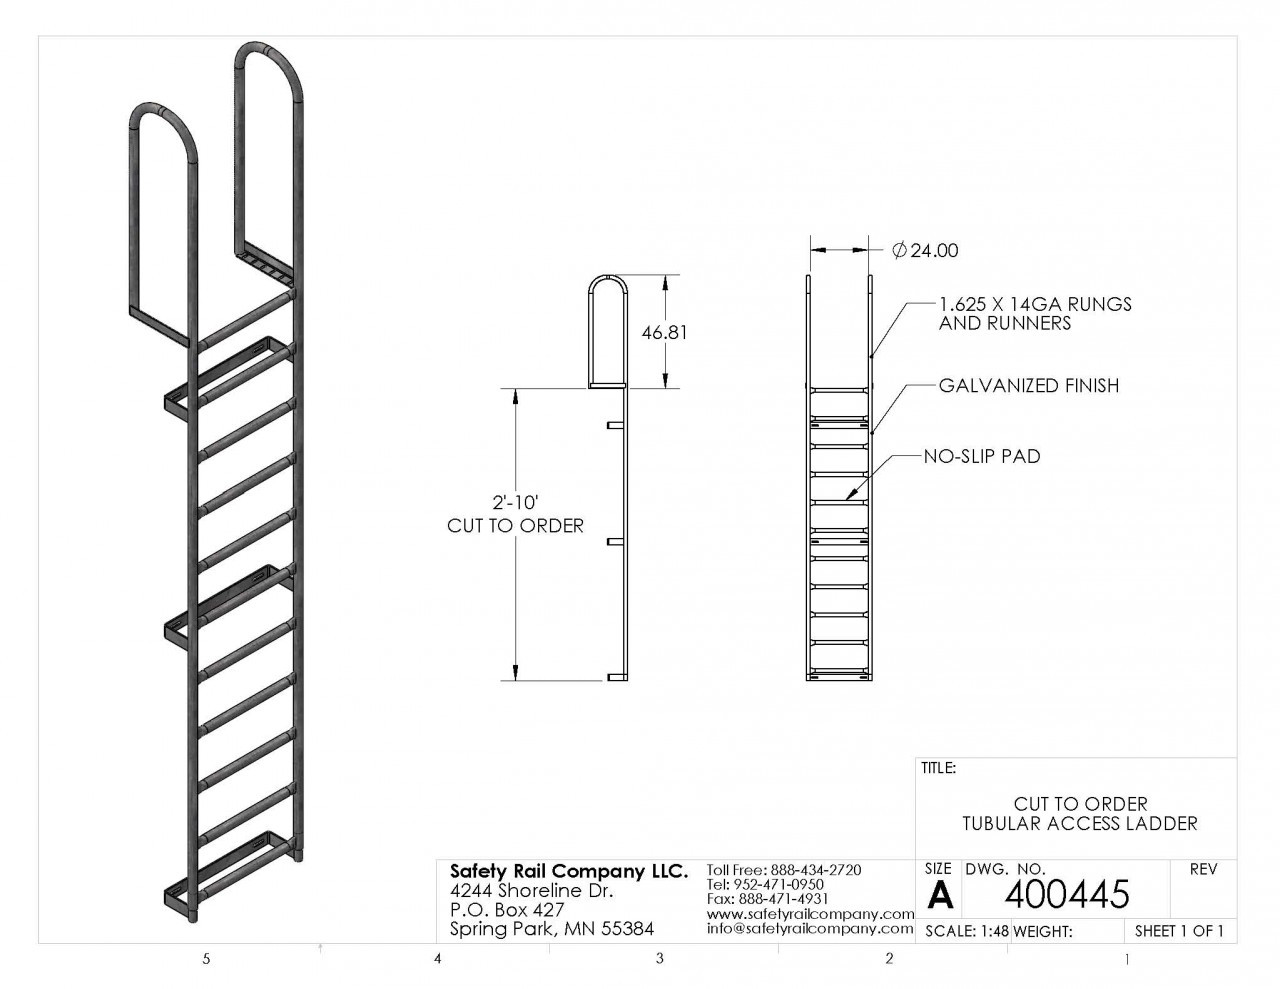 Src Fixed Access Ladder Cut To Required Length